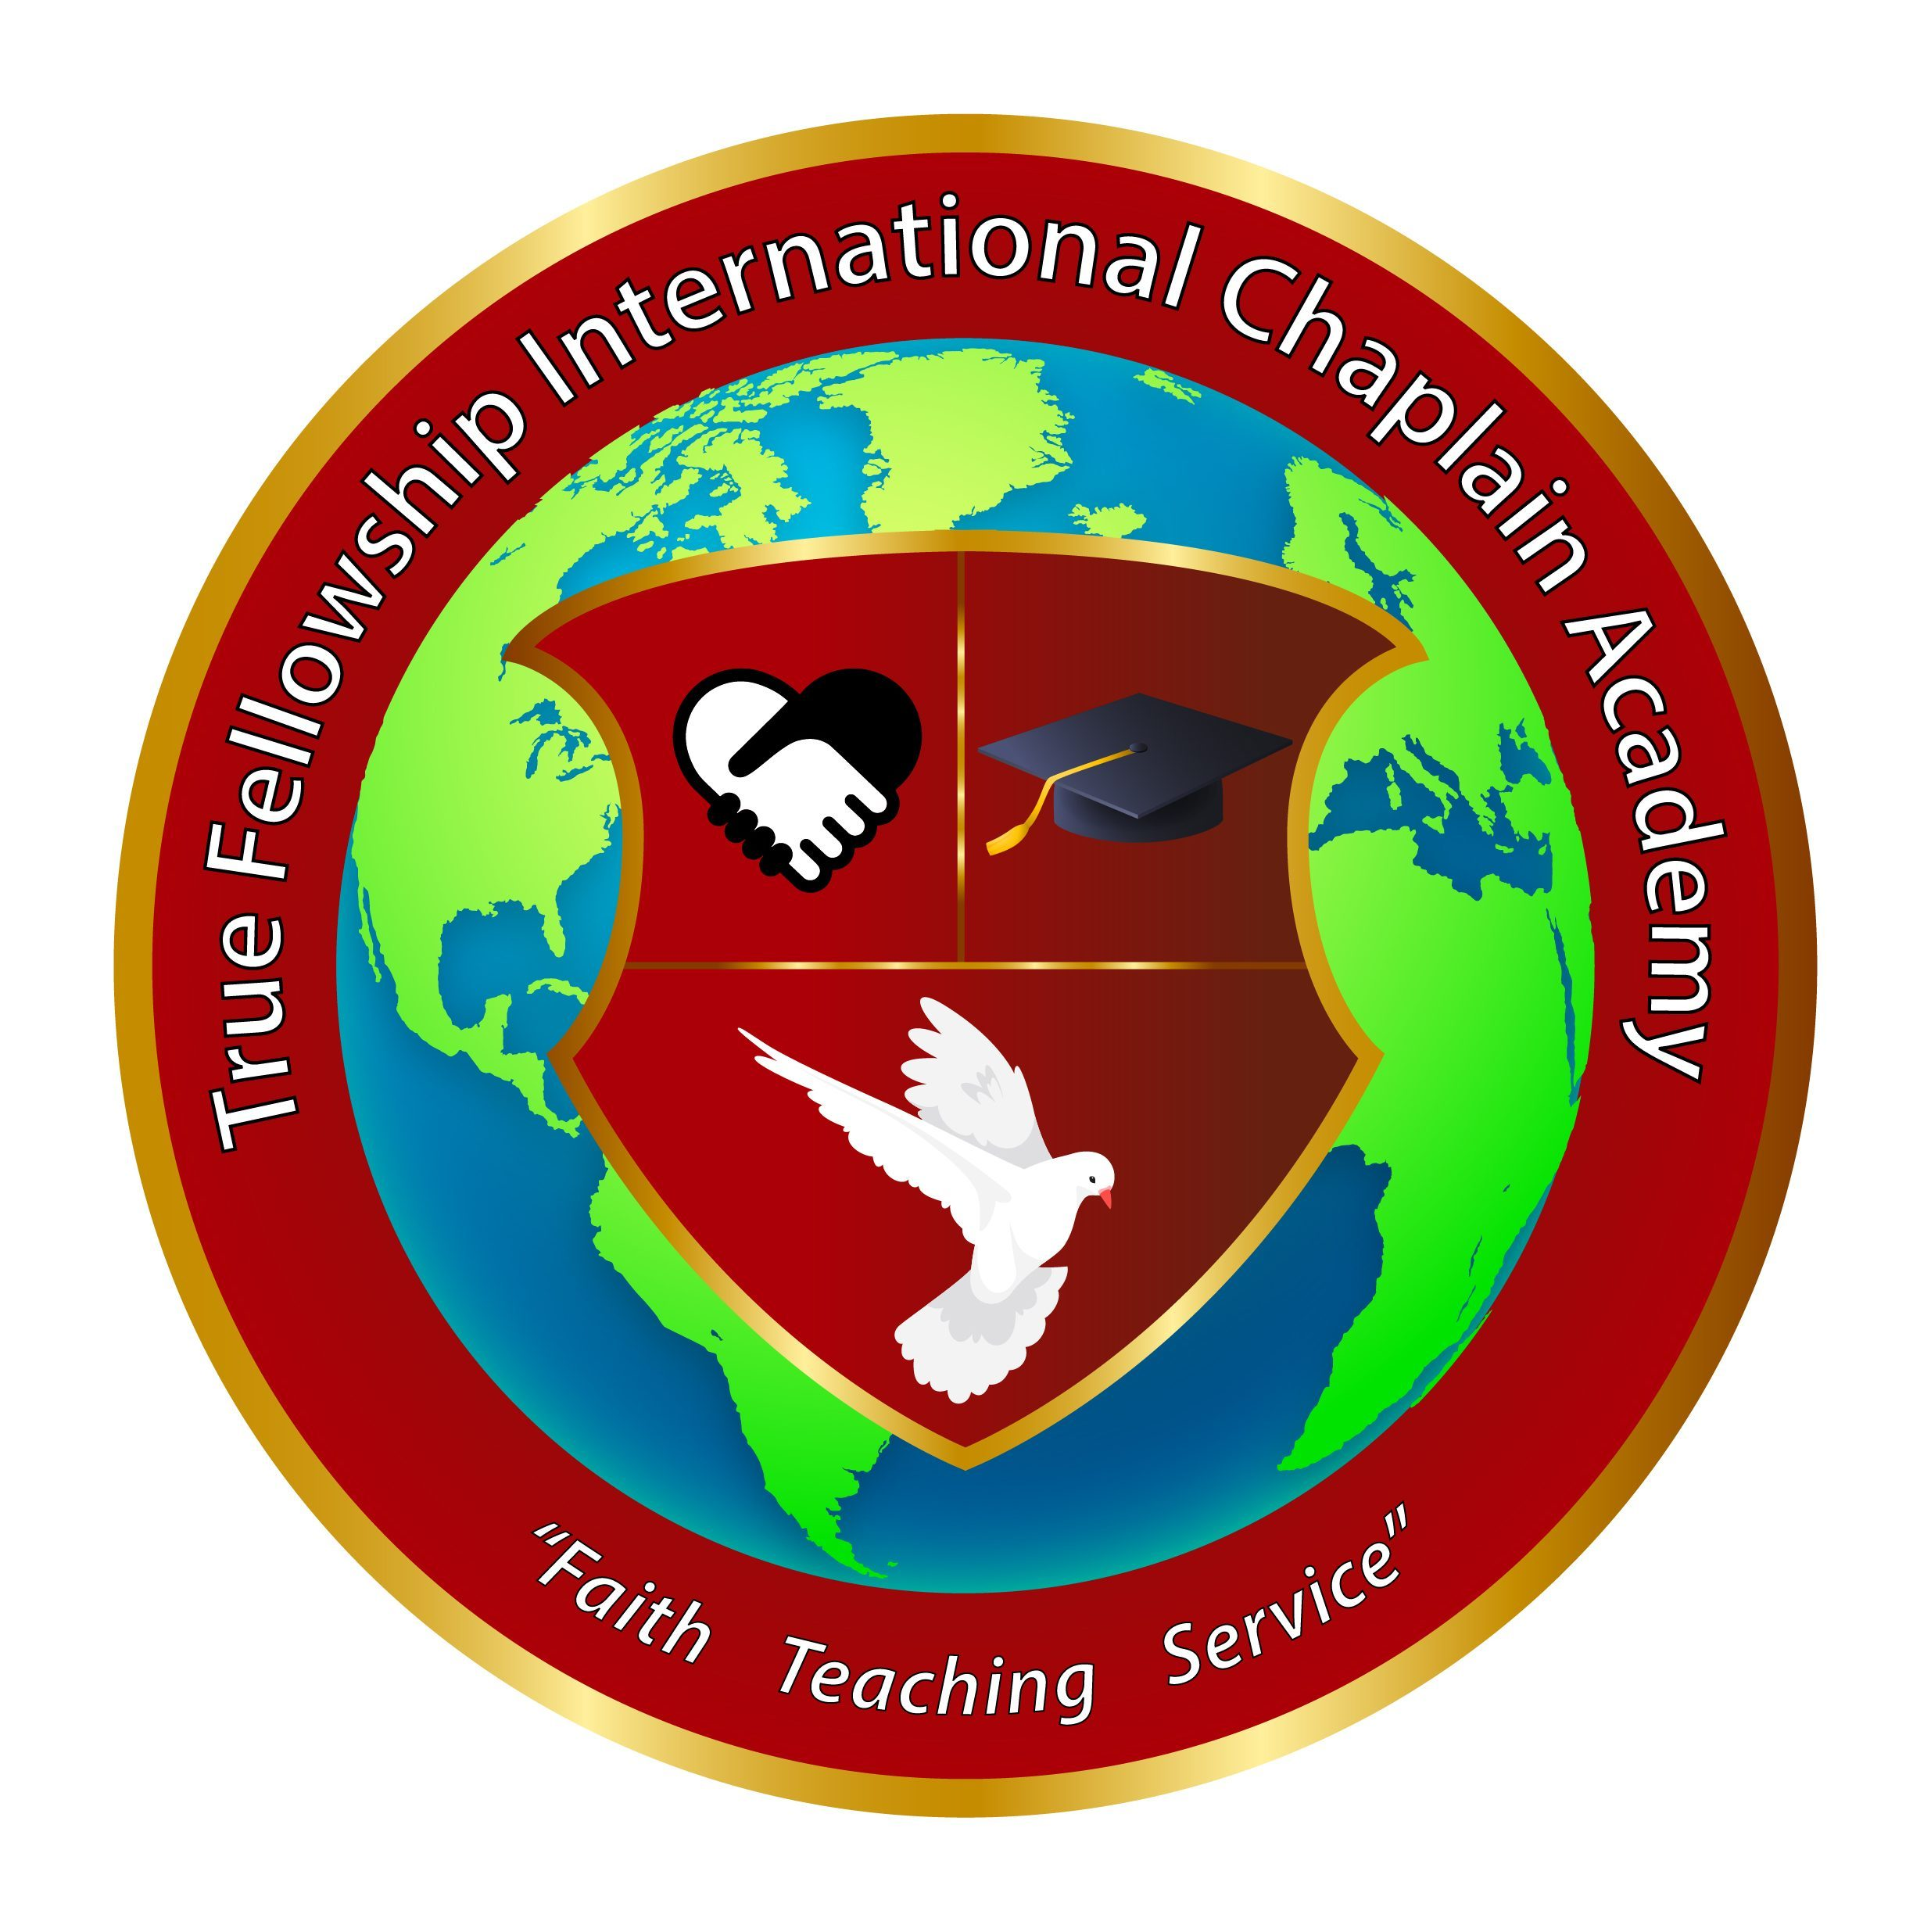 True Fellowship International Chaplain Academy